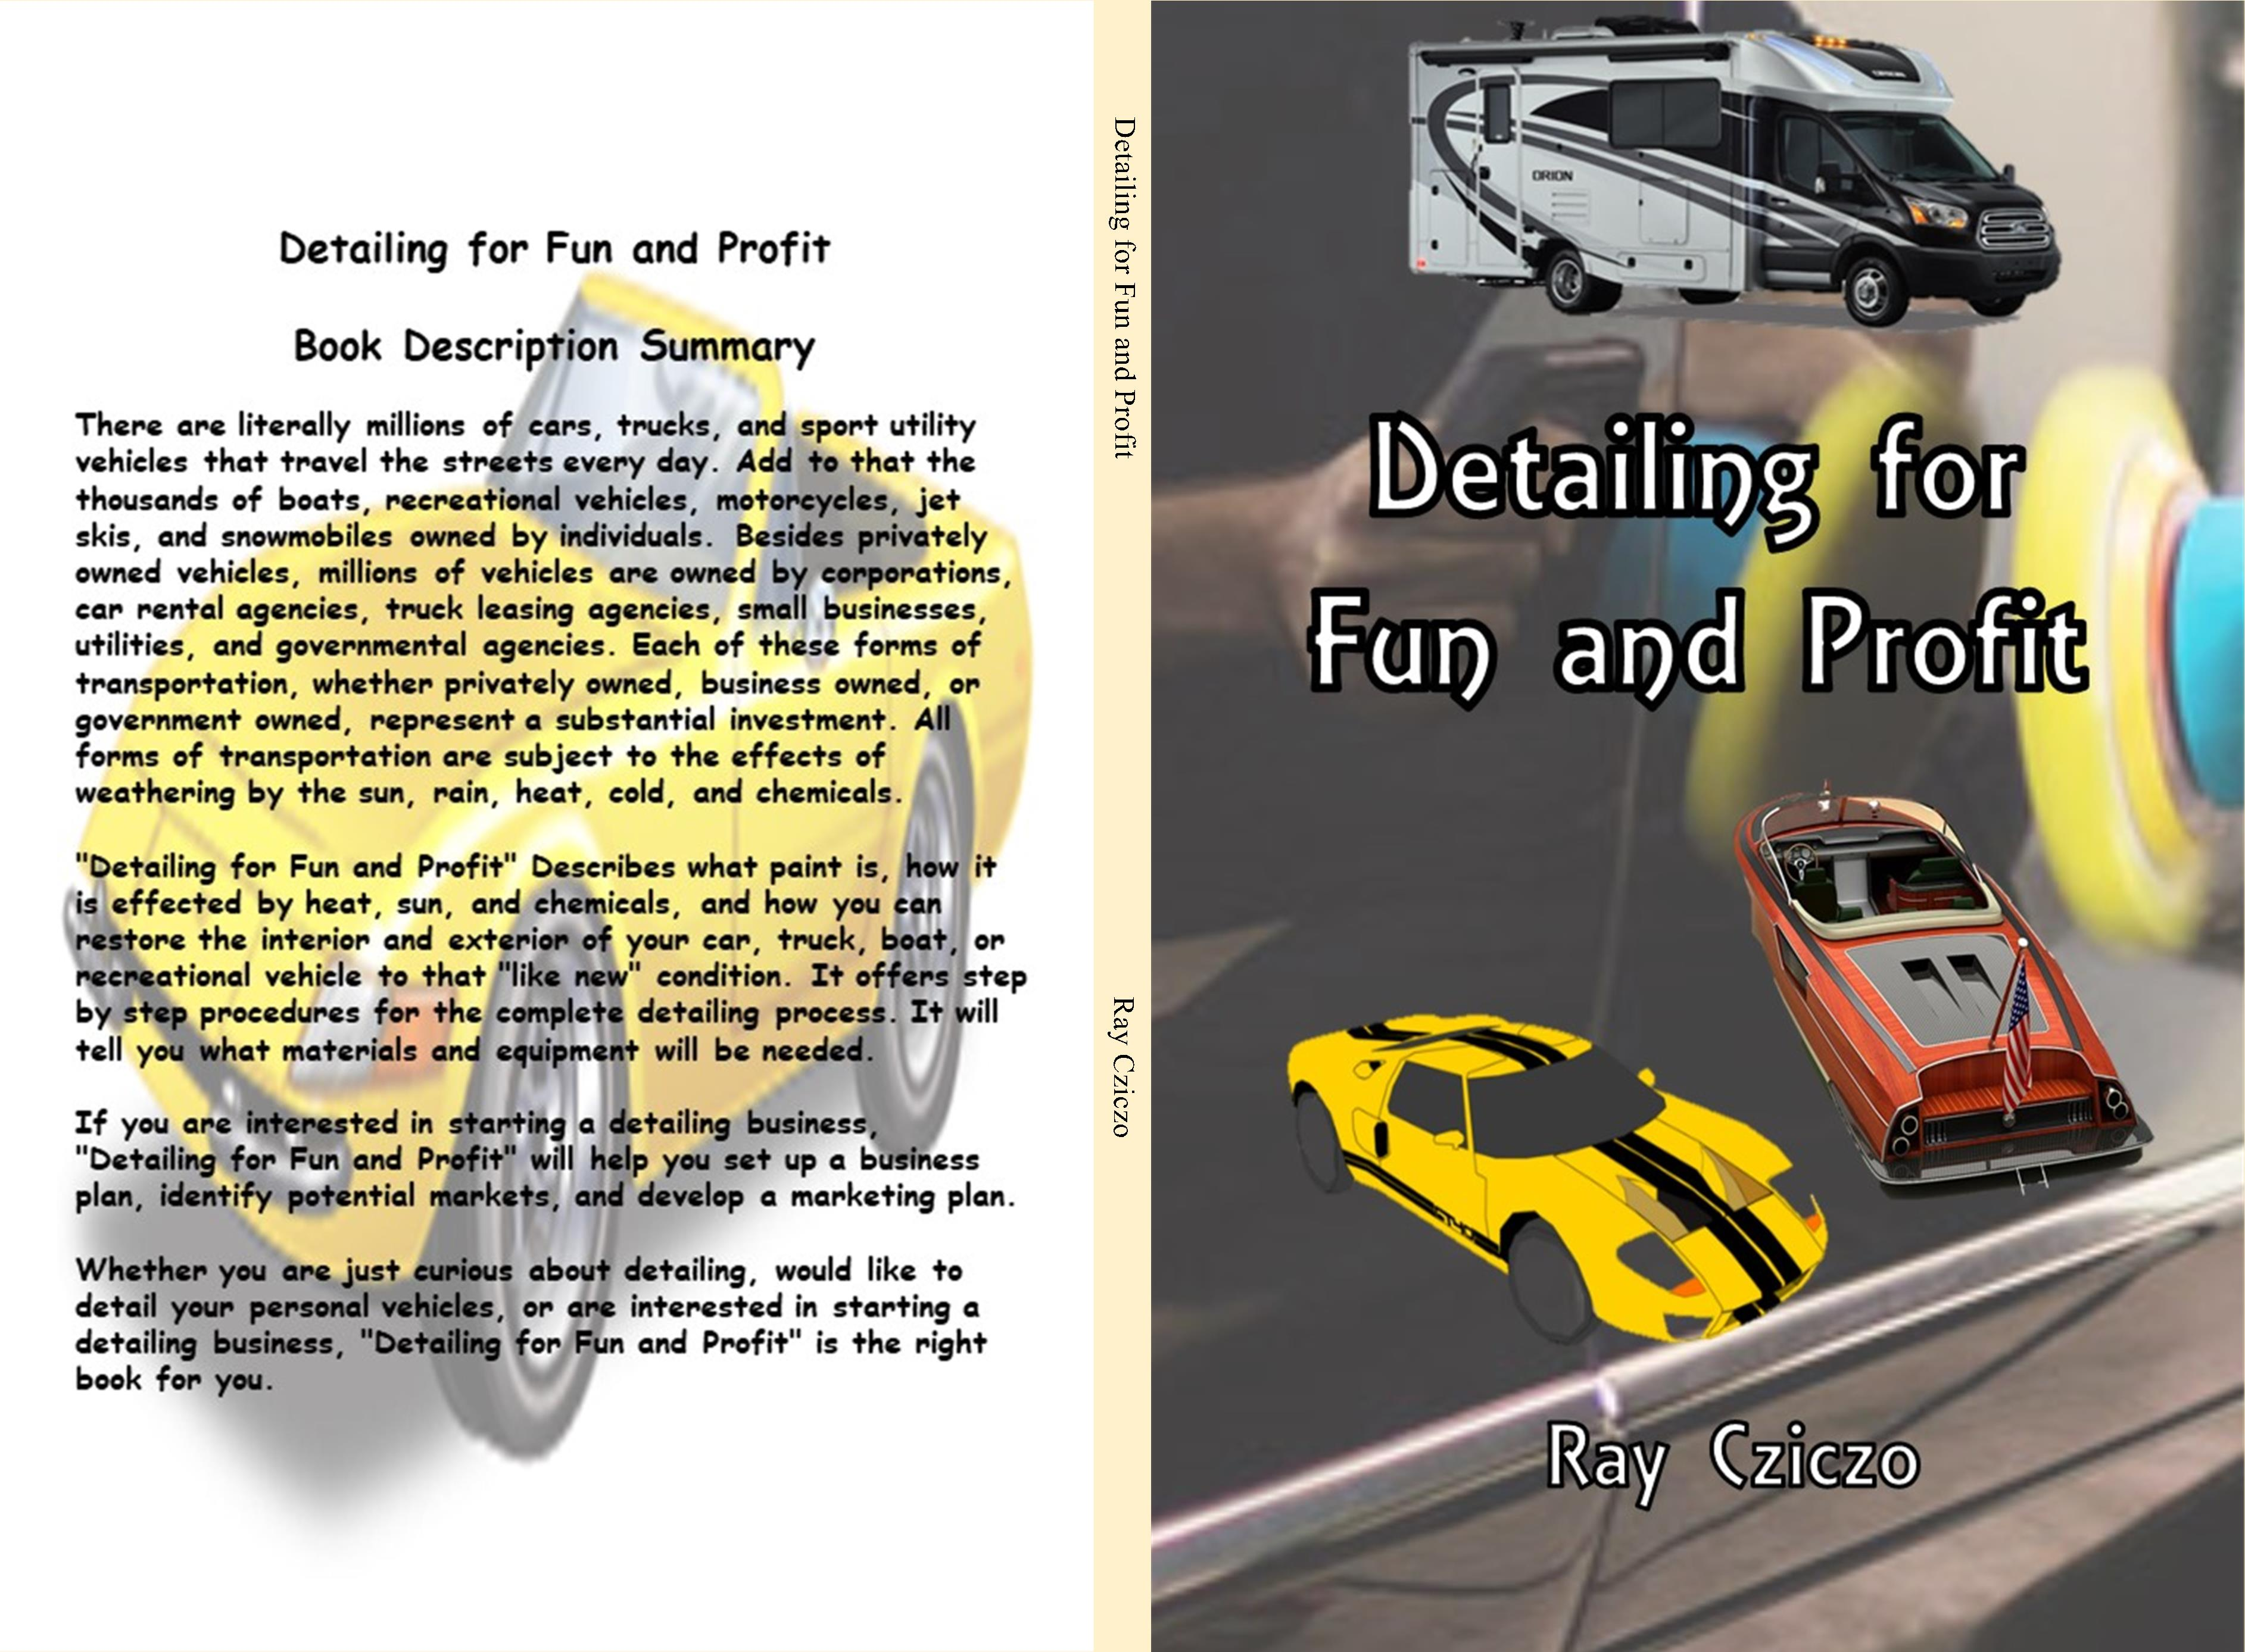 Detailing for Fun and Profit cover image